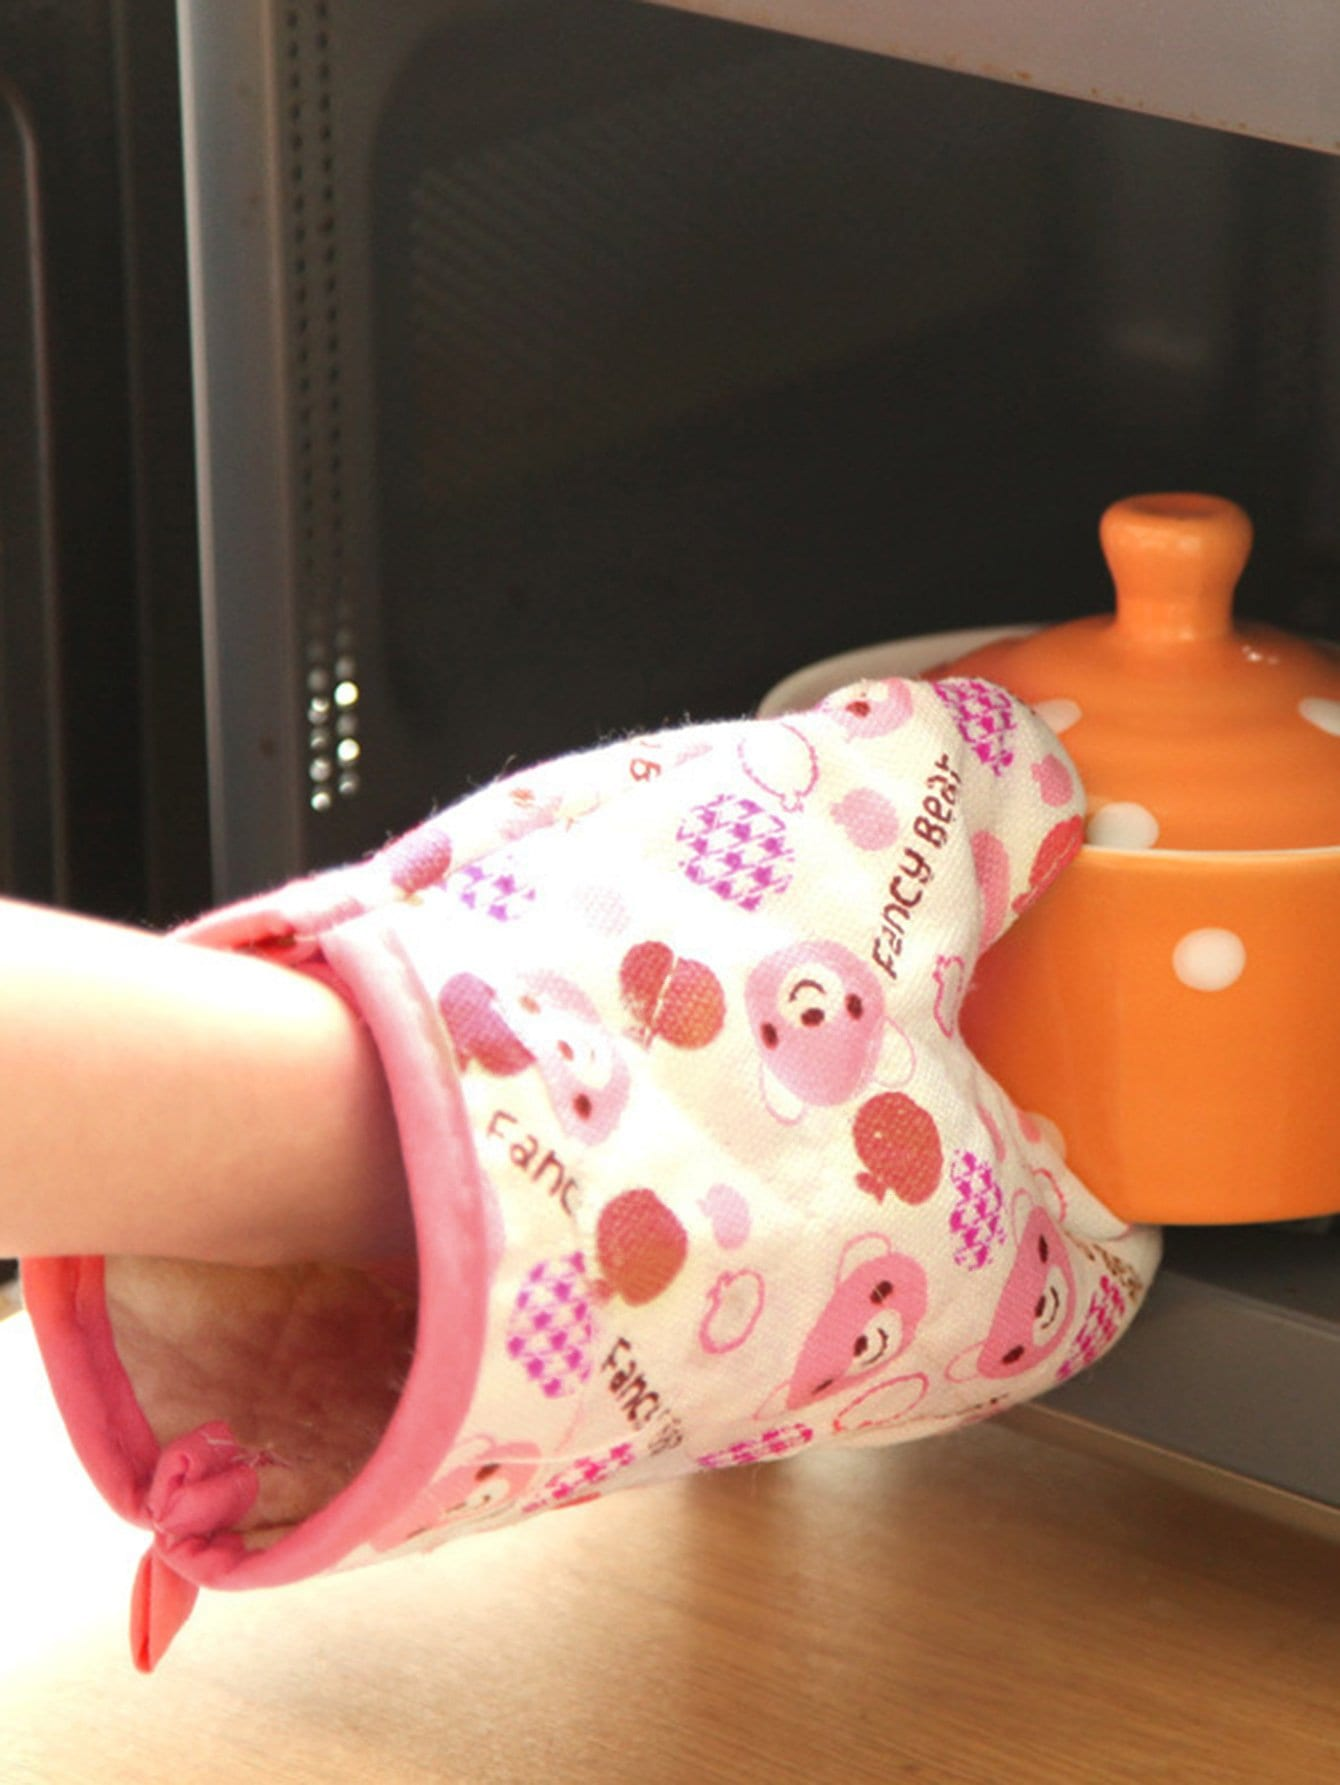 Bear Print Oven Glove alex clark rooster double oven glove